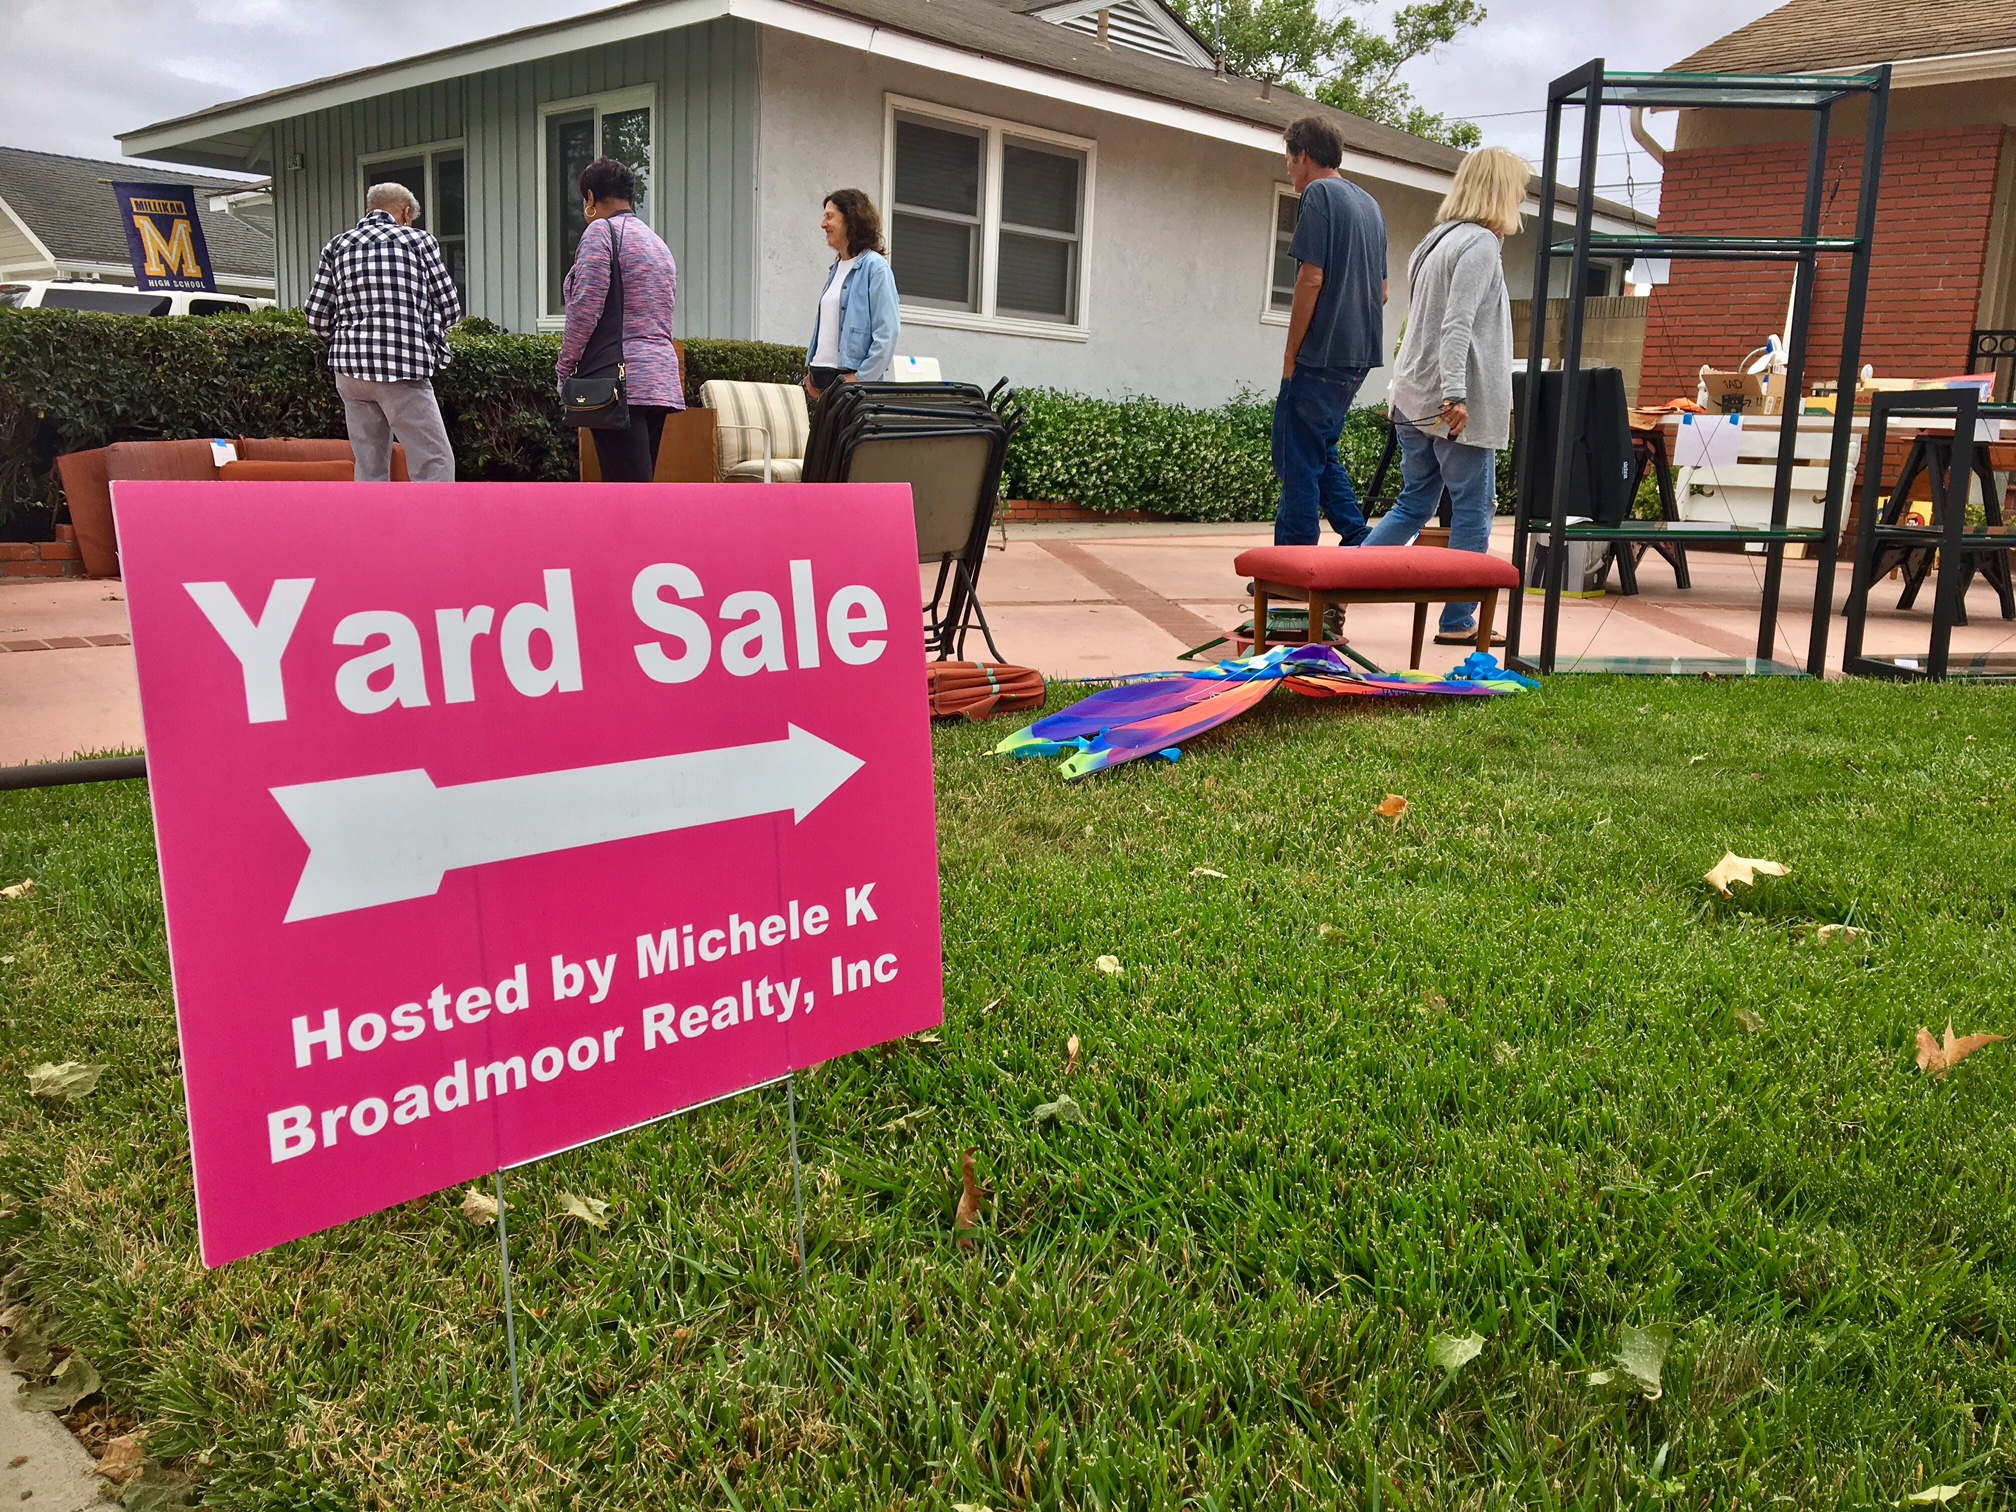 Realtor Sponsored Long Beach Yard Sales